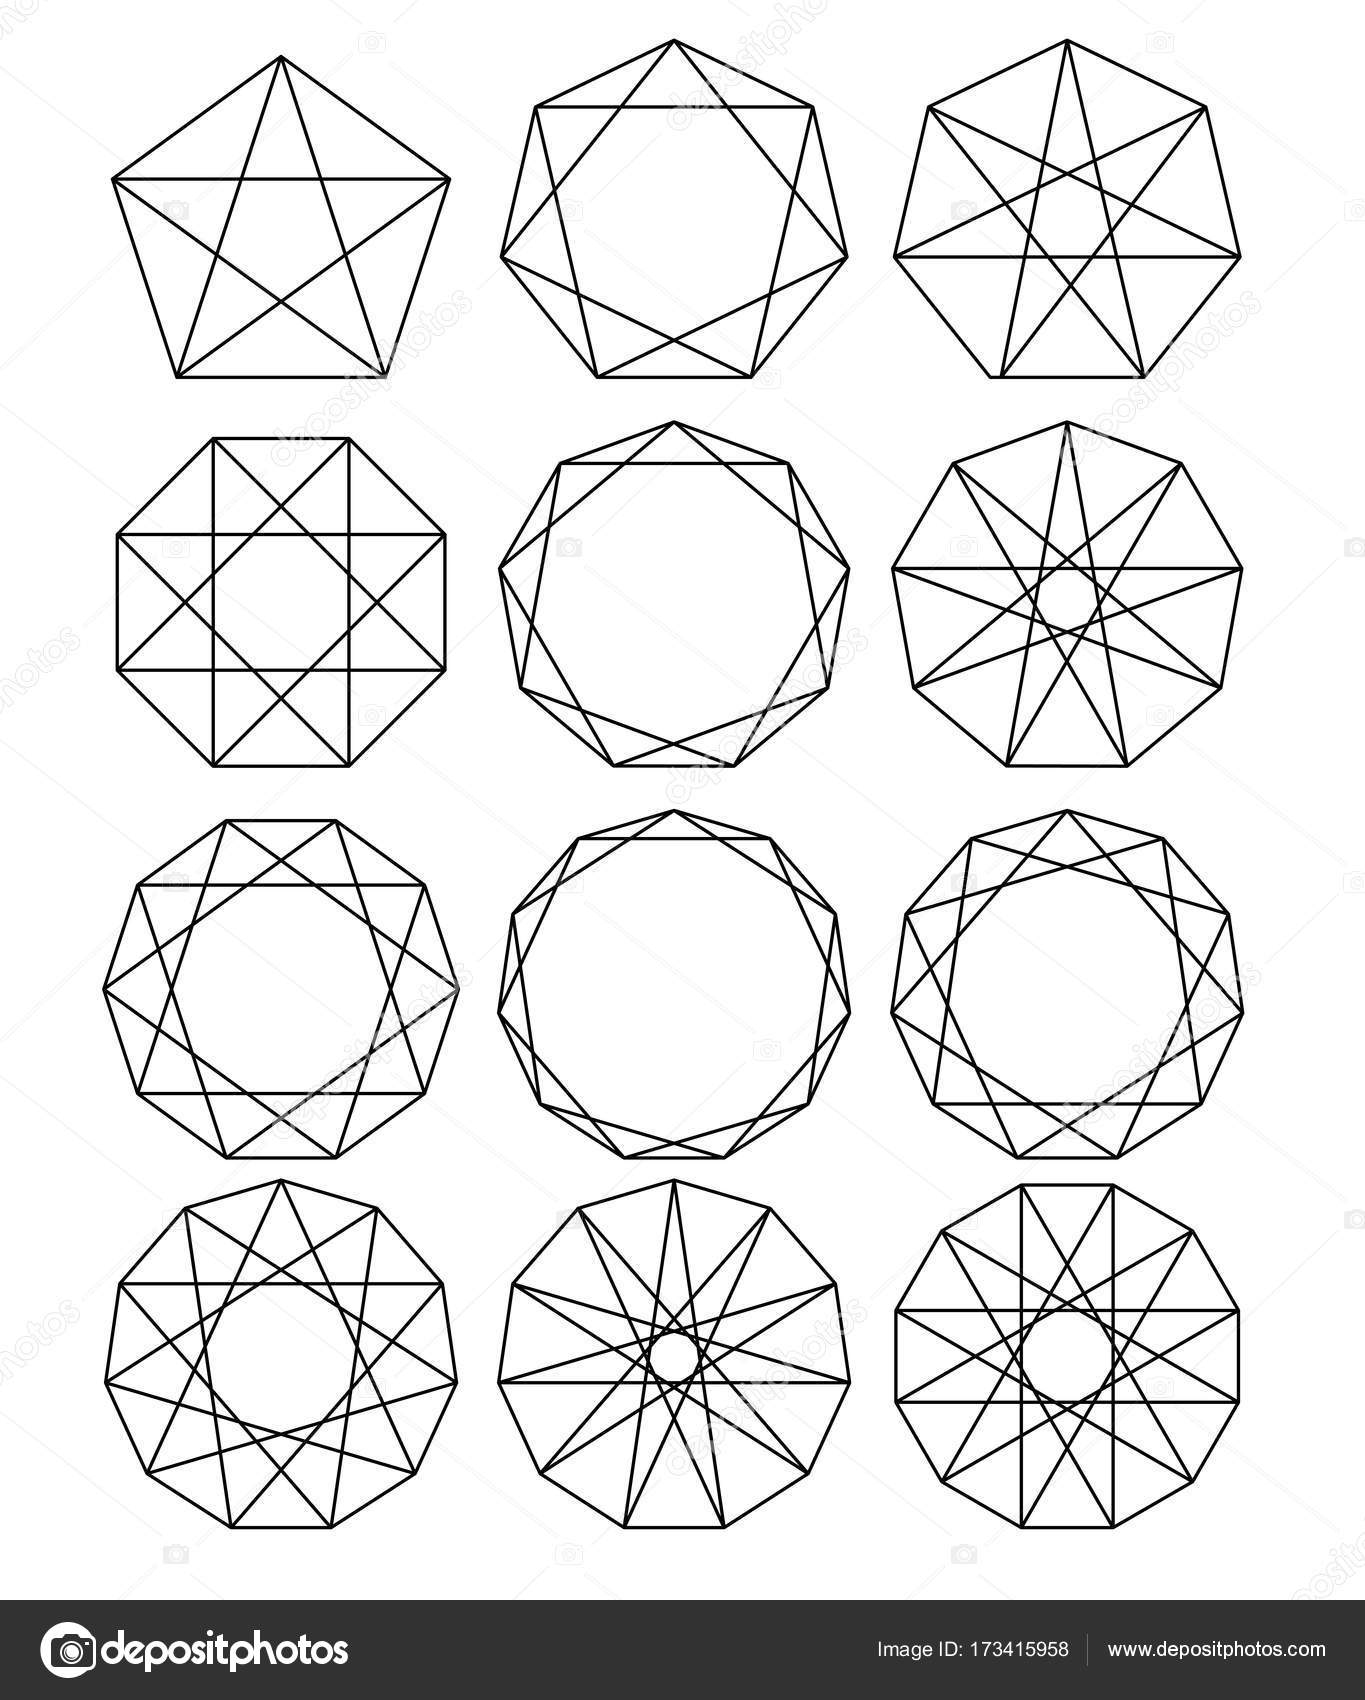 hight resolution of sacred geometry lines crossing the polygon inscribed in a circle white lines on a black background outline mandala frames crystal form